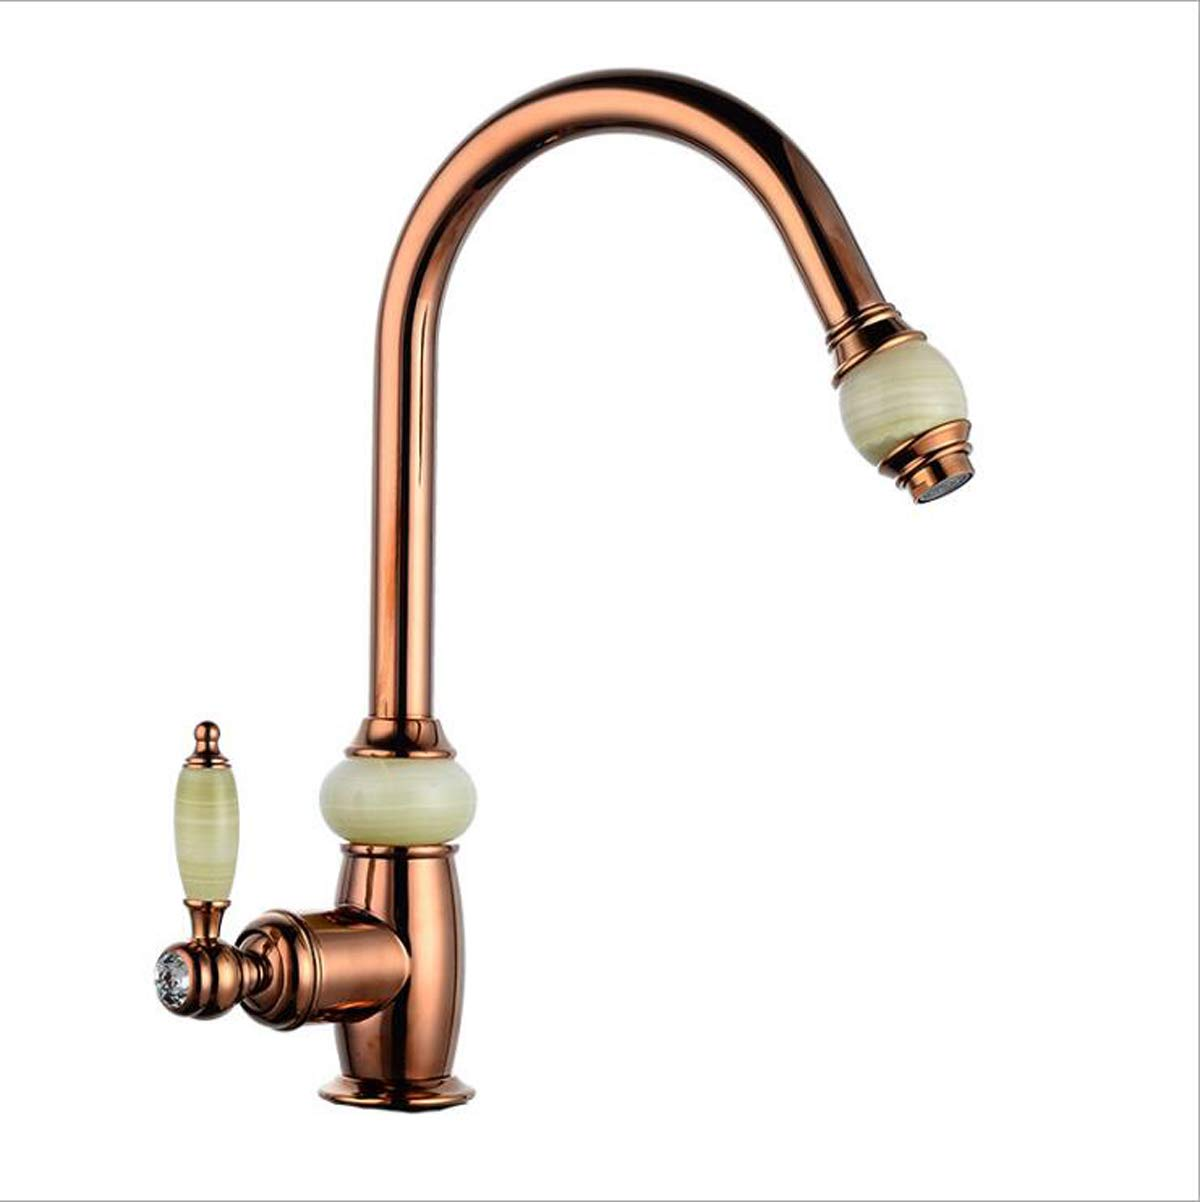 Rose Gold Kitchen Sink Faucet Pull Out Pull Down With Spray Mixer Tap Swivel Bathroom Faucet (gold)